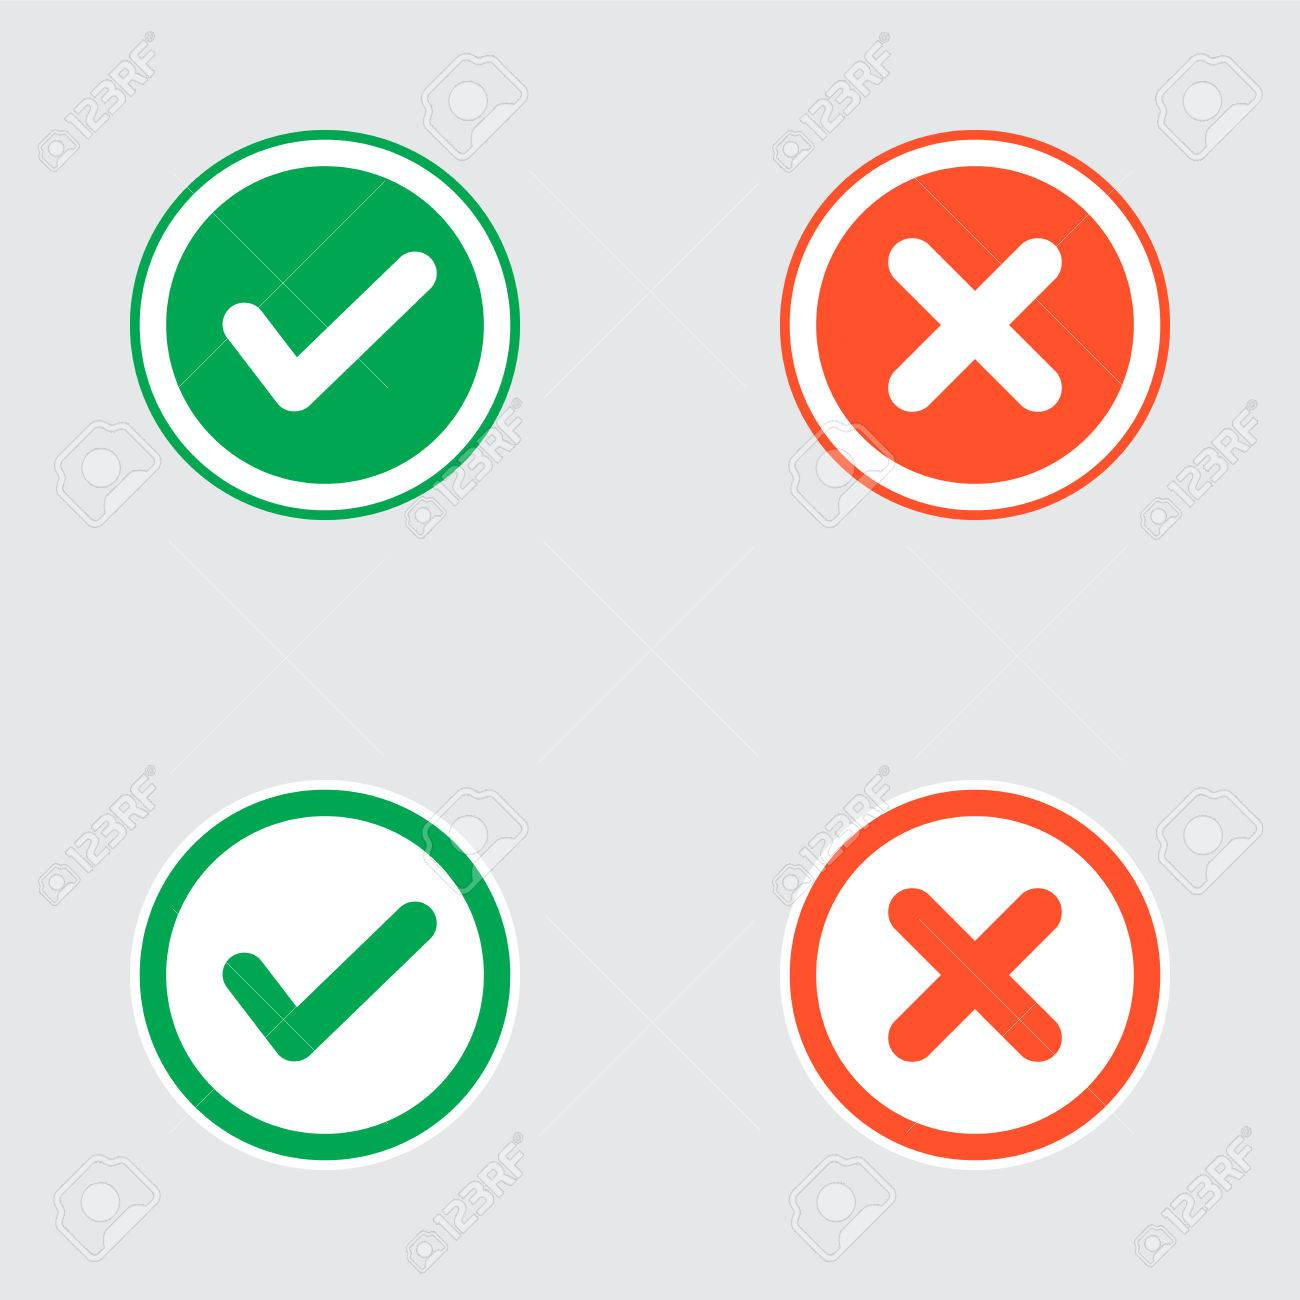 Vector Set of Flat Design Check Marks Icons. Different Variations of Ticks and Crosses Represents Confirmation, Right and Wrong Choices, Task Completion, Voting. - 40706985